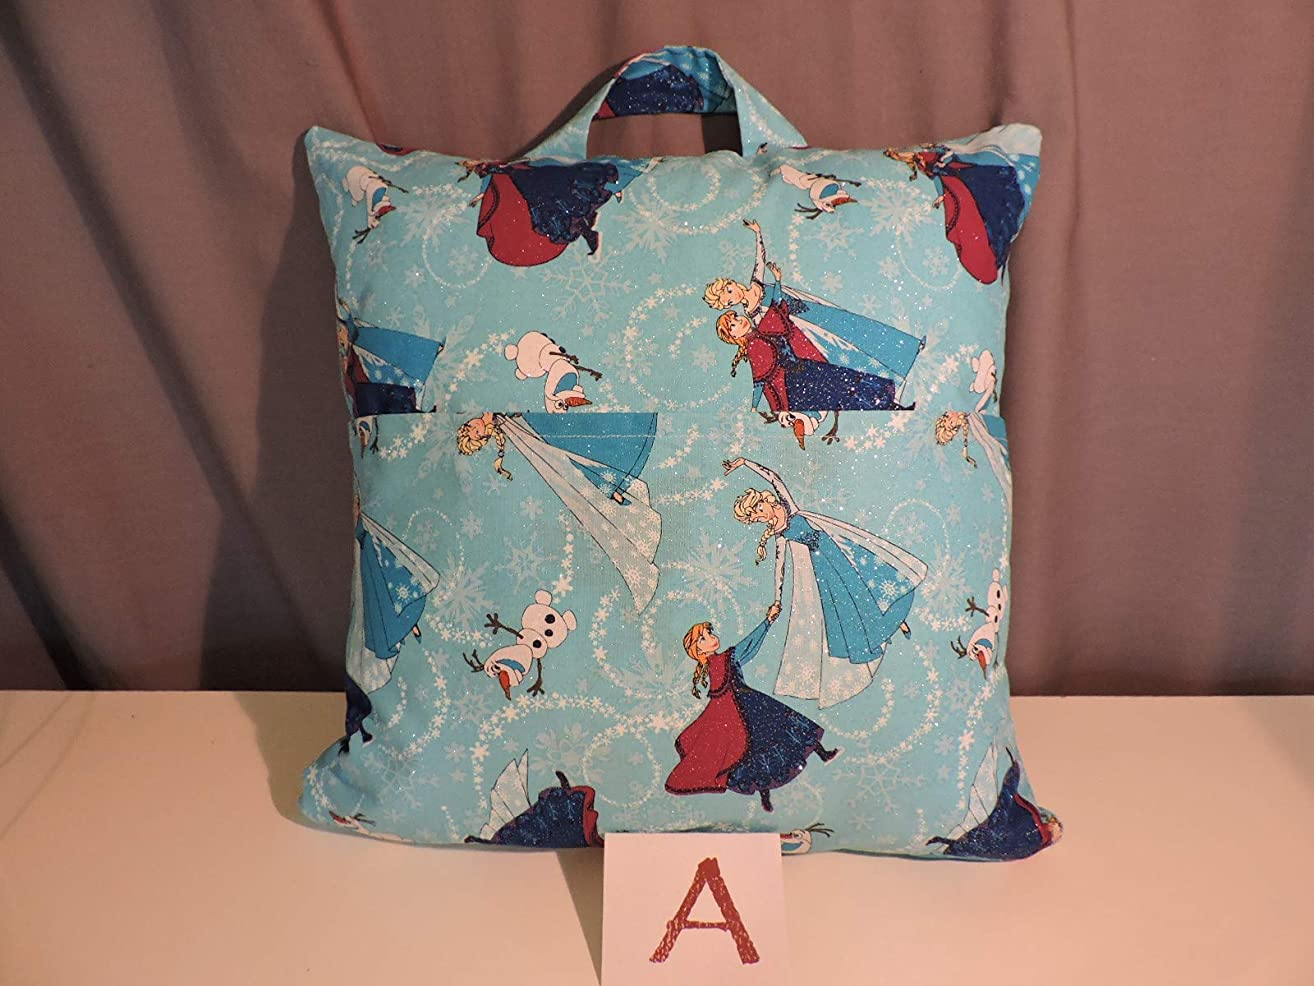 Reader Pillow with Elsa, Anna, Olaf from Frozen, Child's Pillow, Pocket Pillow - 16